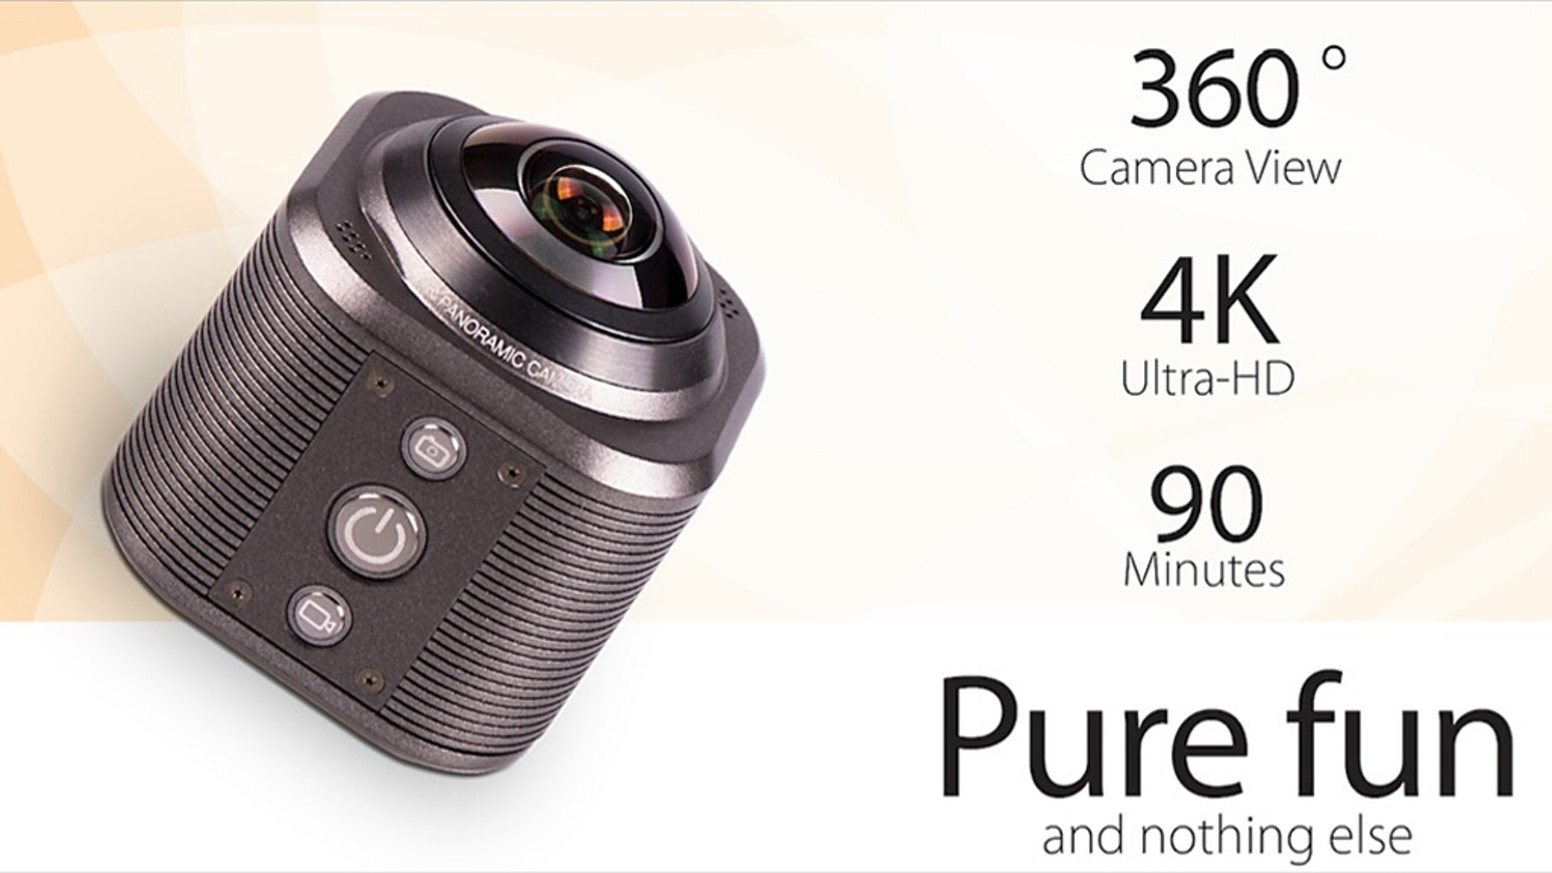 Camorama: The 4K Action VR & 360 Degree Cam Made For Sharing